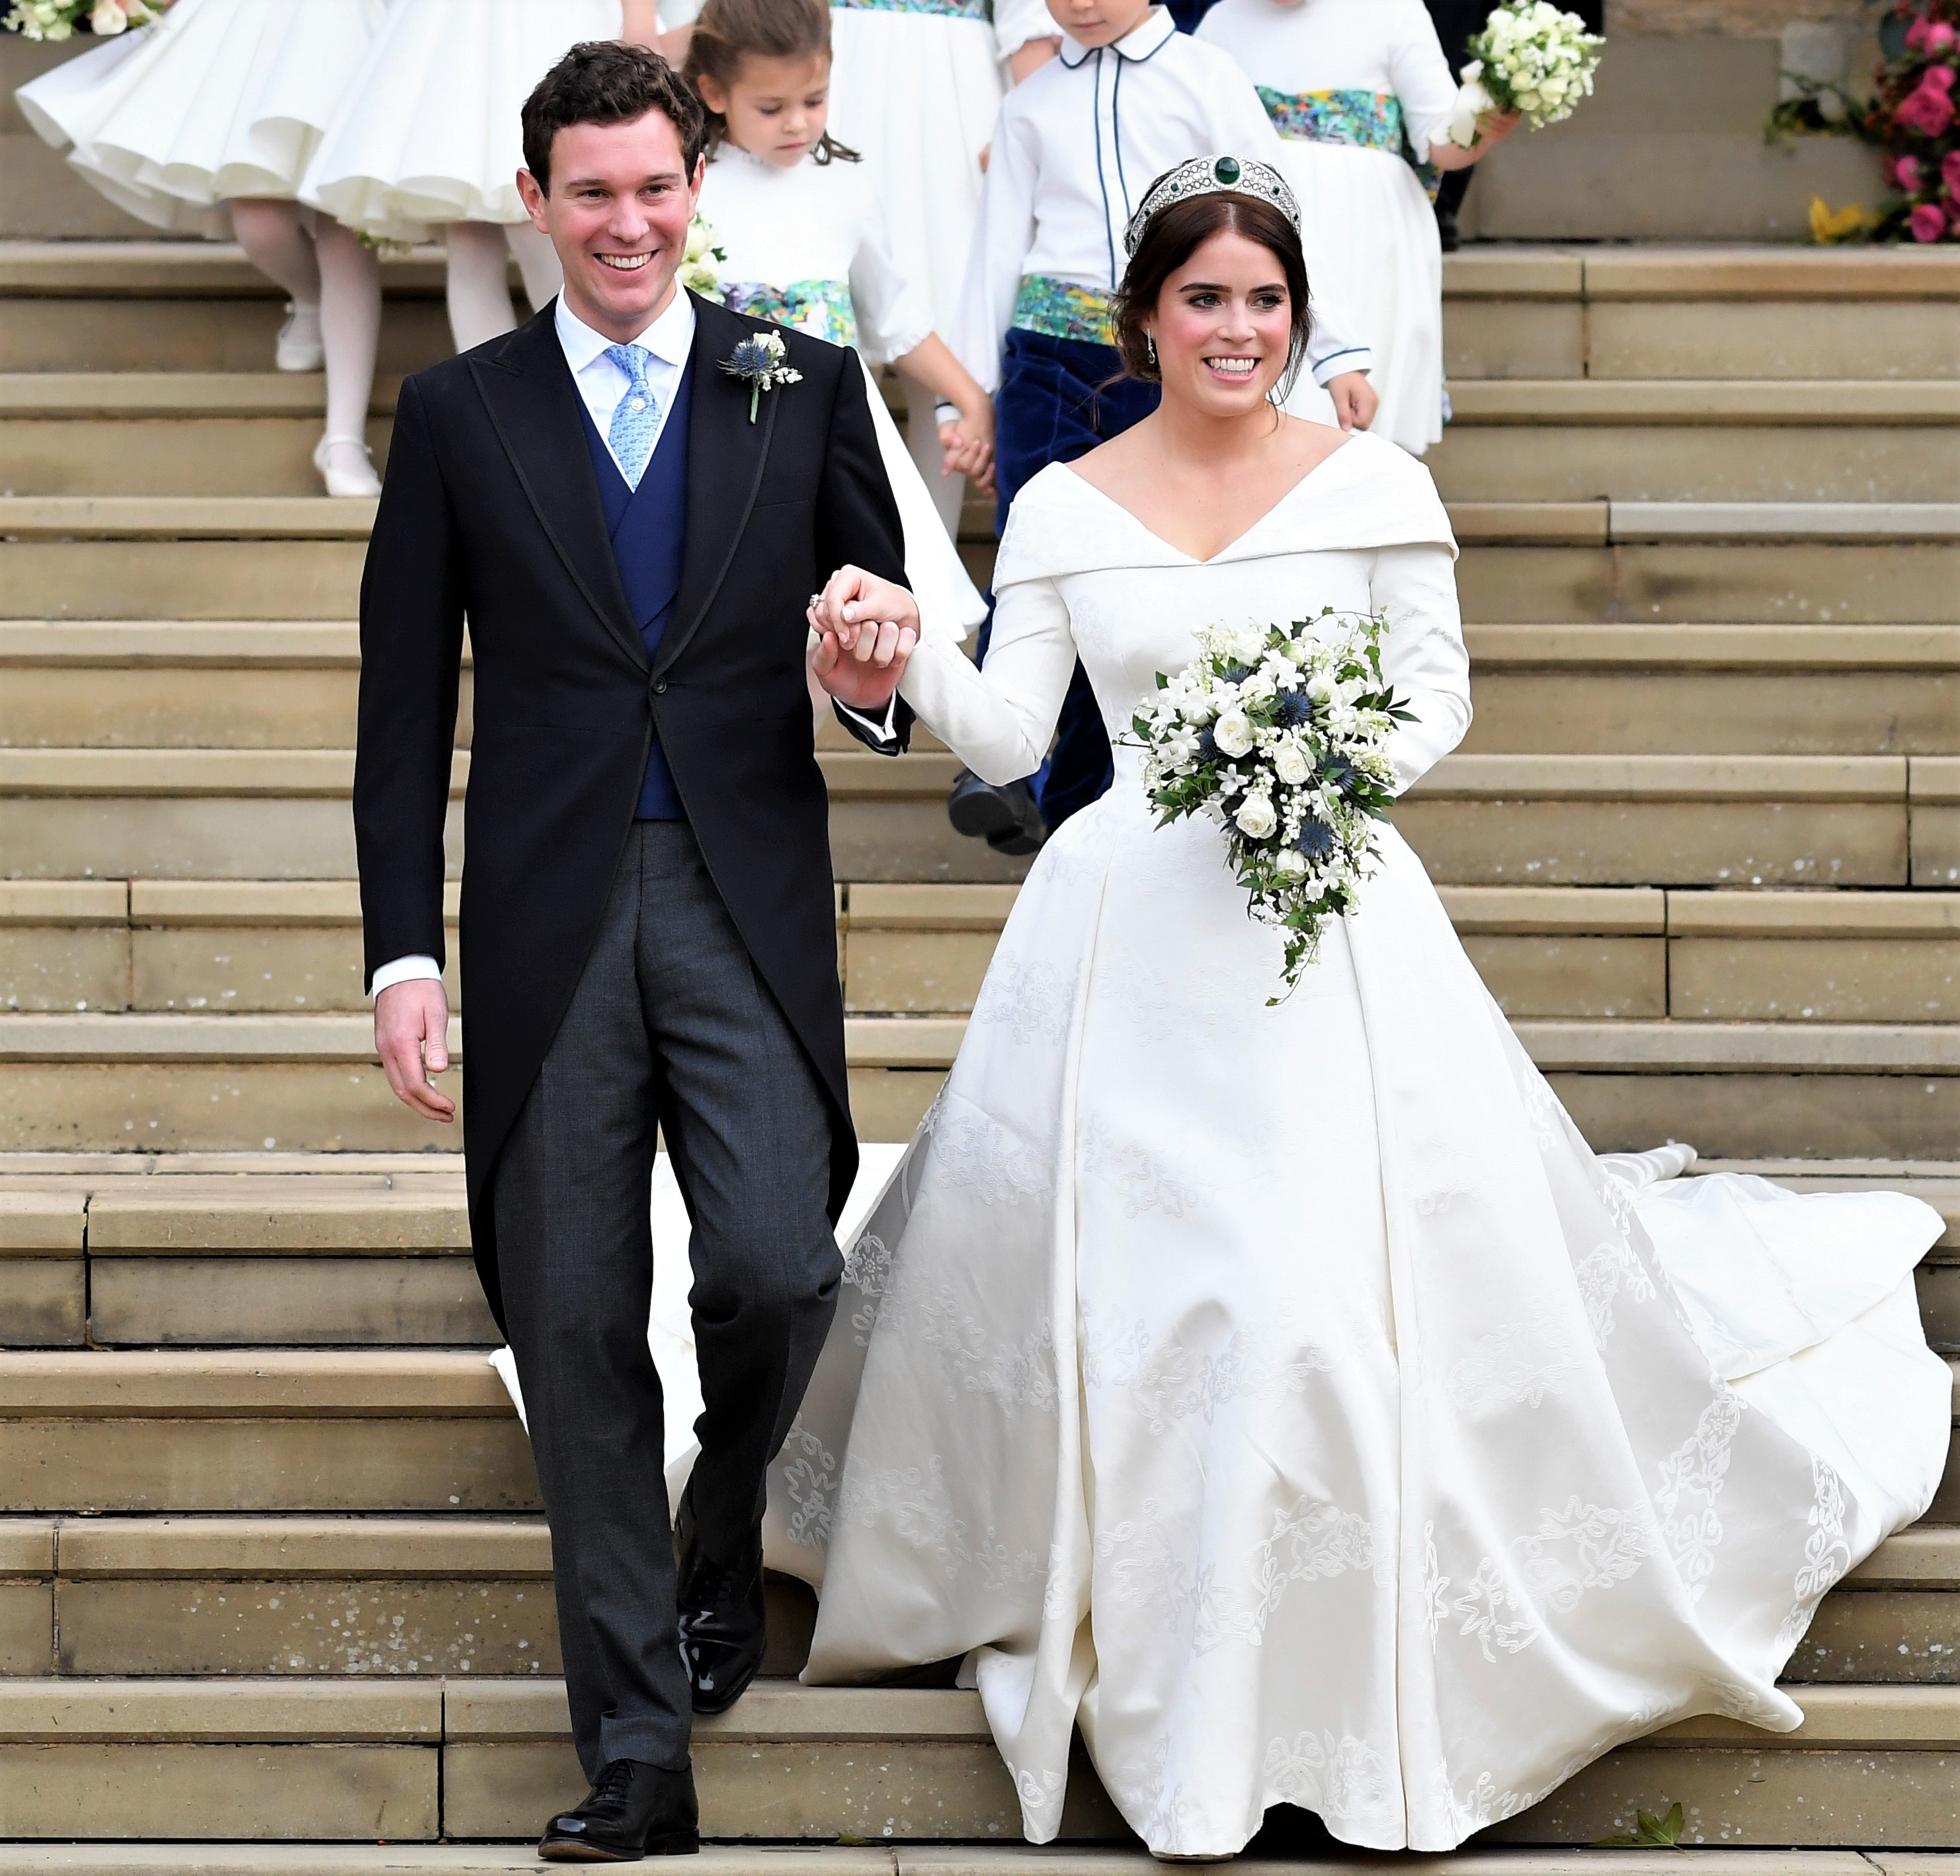 See Princess Eugenie's Open-Back Wedding Dress, Designed to Feature Her Spinal Surgery Scar